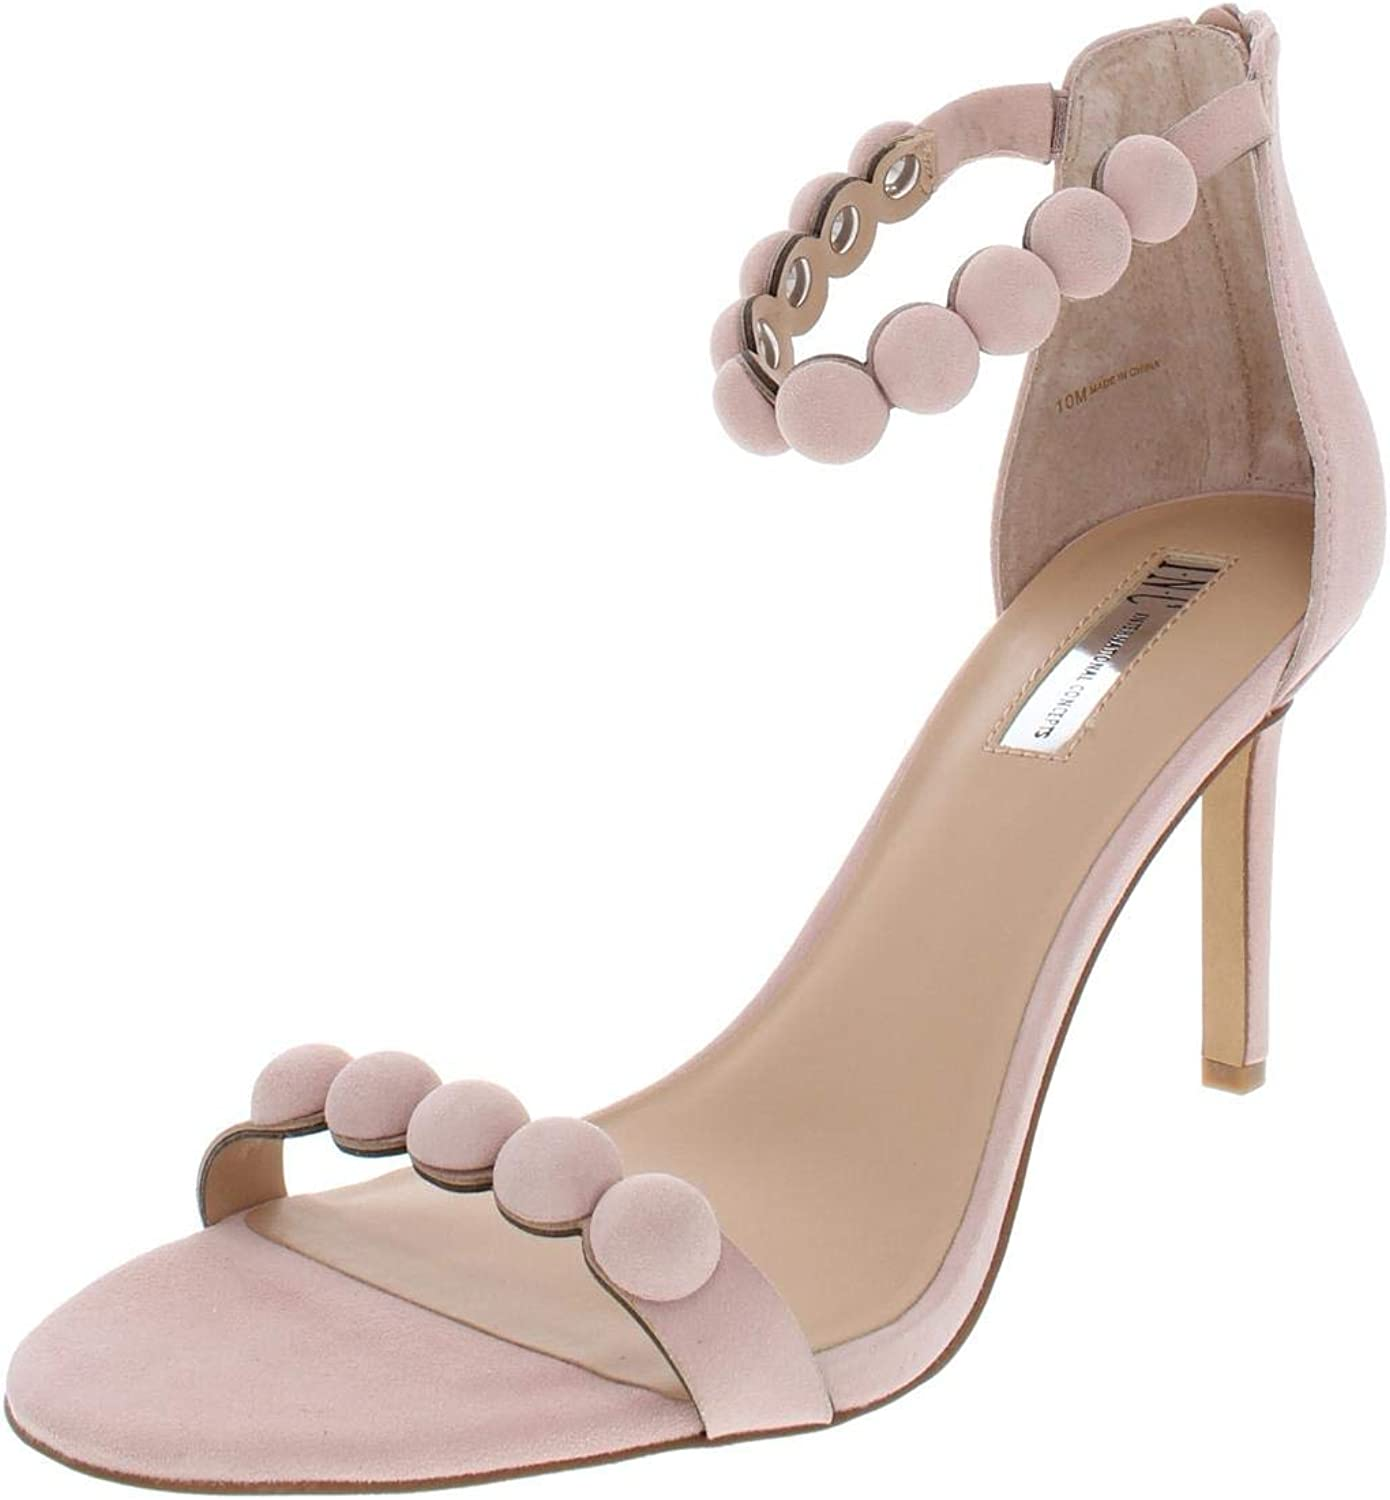 Inc Womens Gabbye Solid Ankle Strap Dress Sandals, Pink Bloom, Size 10.0